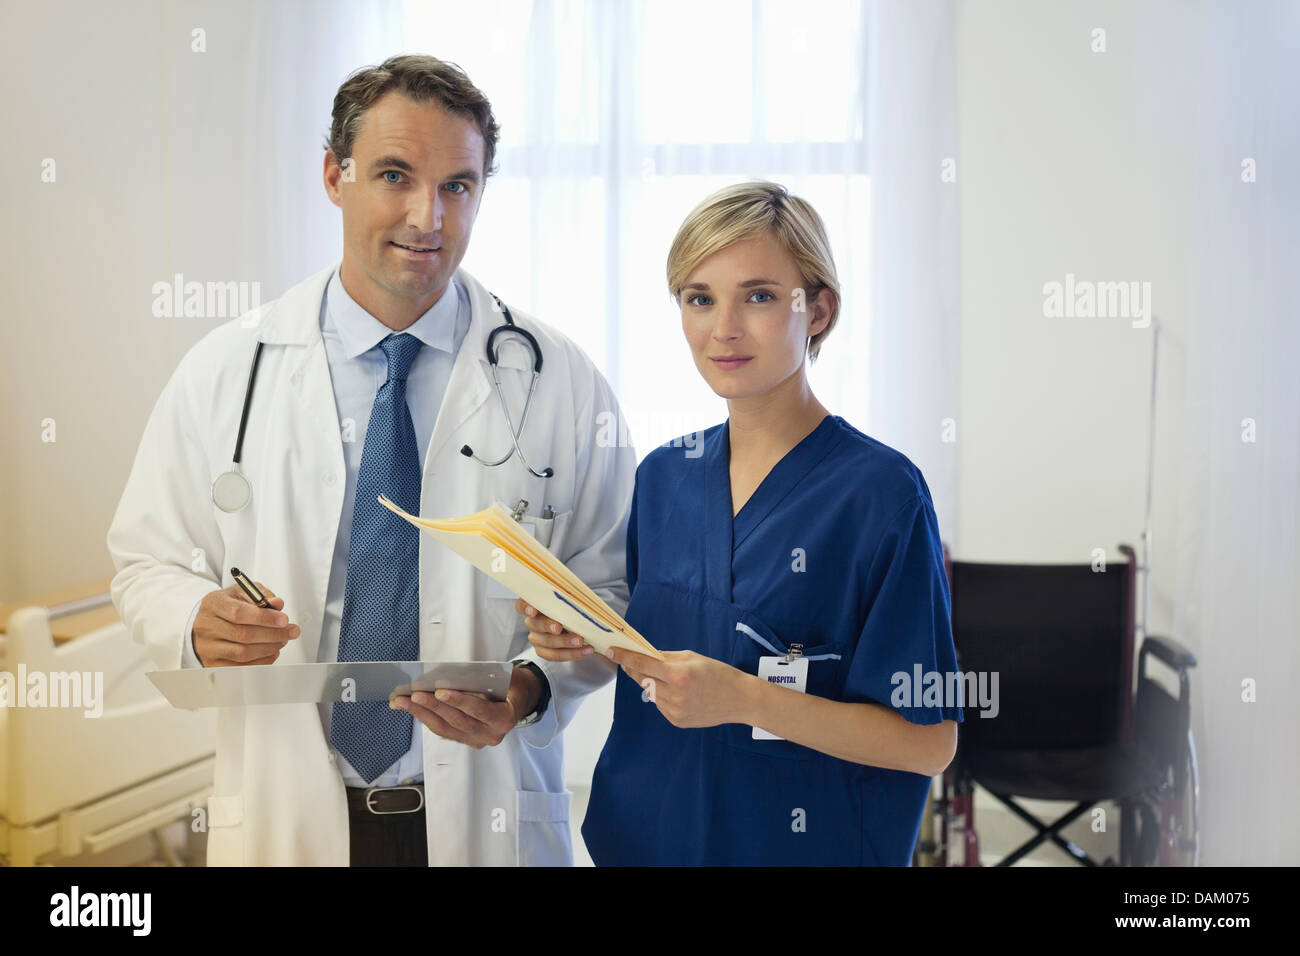 Doctor and nurse talking in hospital room - Stock Image